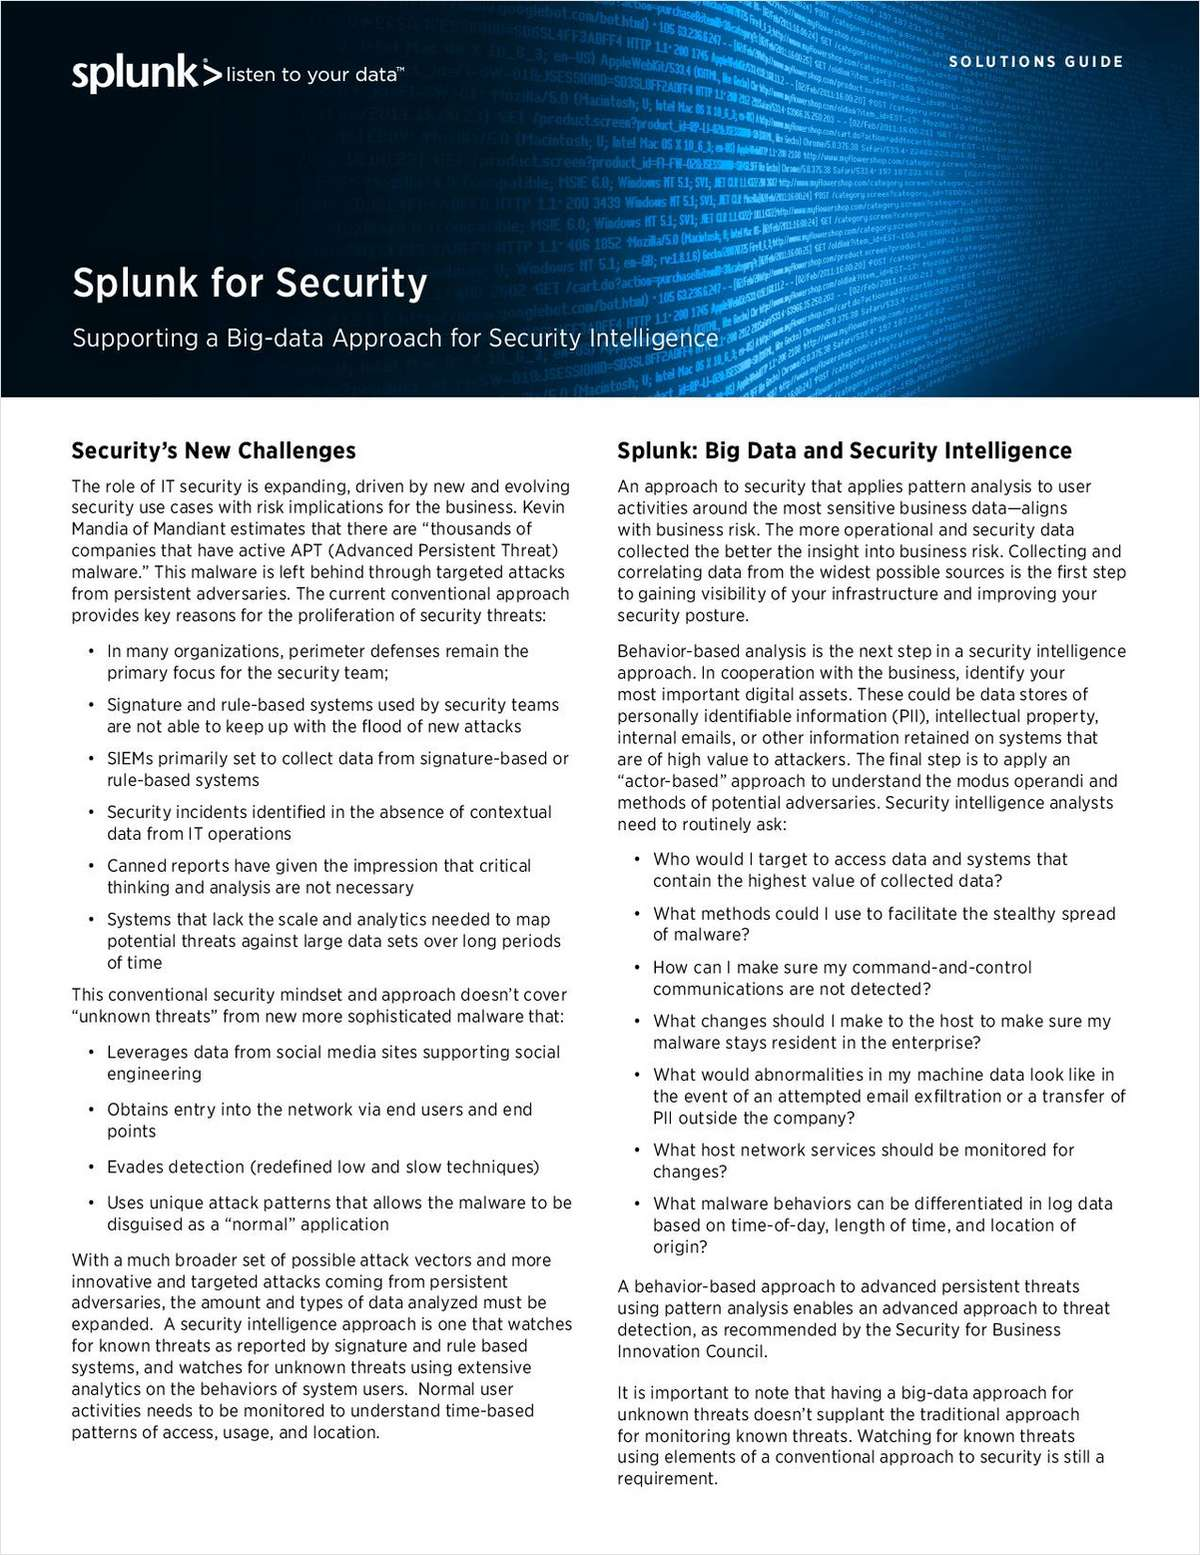 Supporting a Big-Data Approach for Security Intelligence